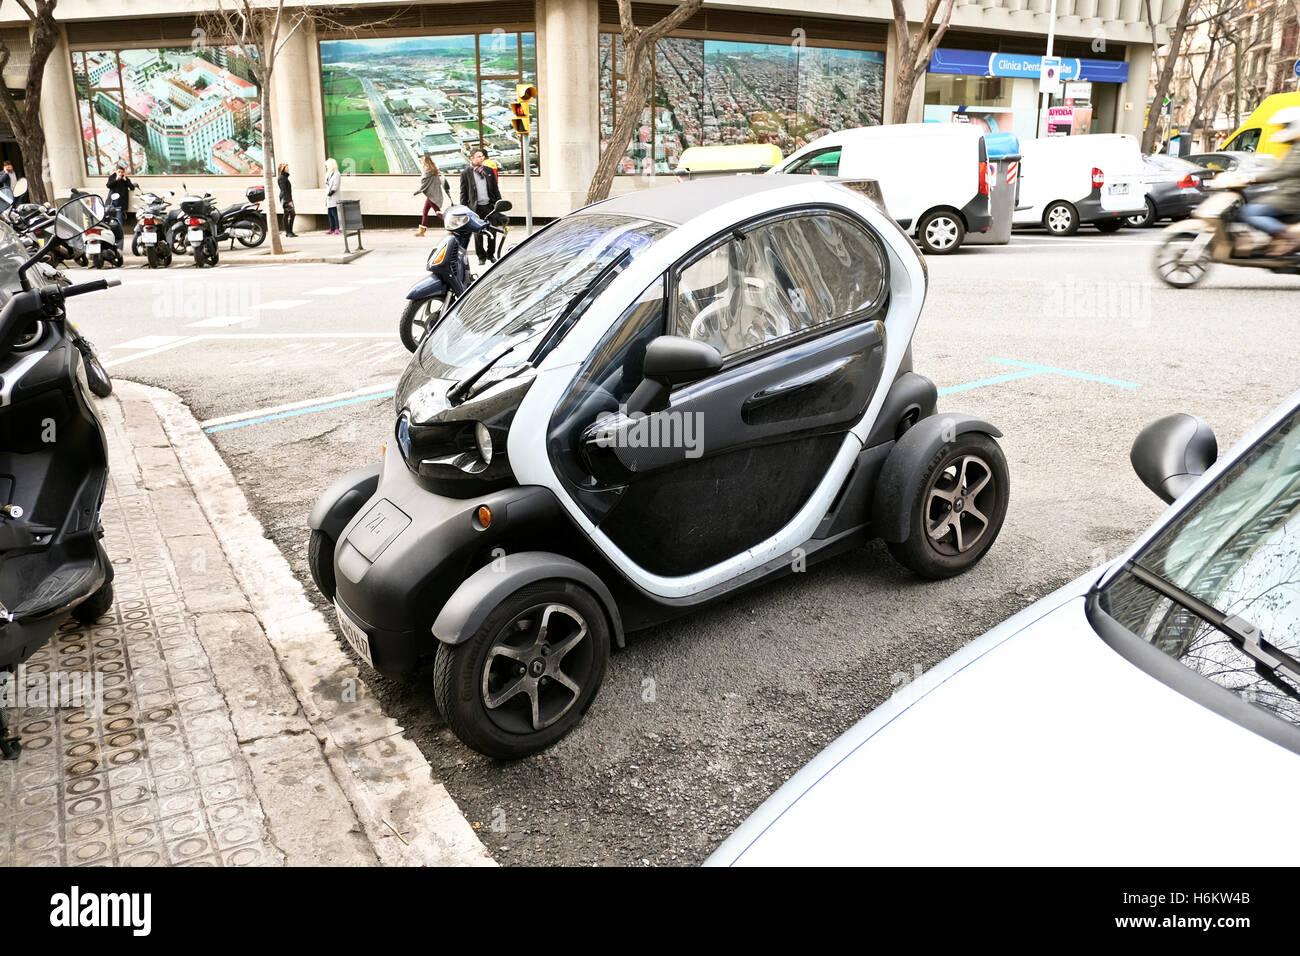 Renault Twizy parked in a street in Barcelona, Spain Stock Photo